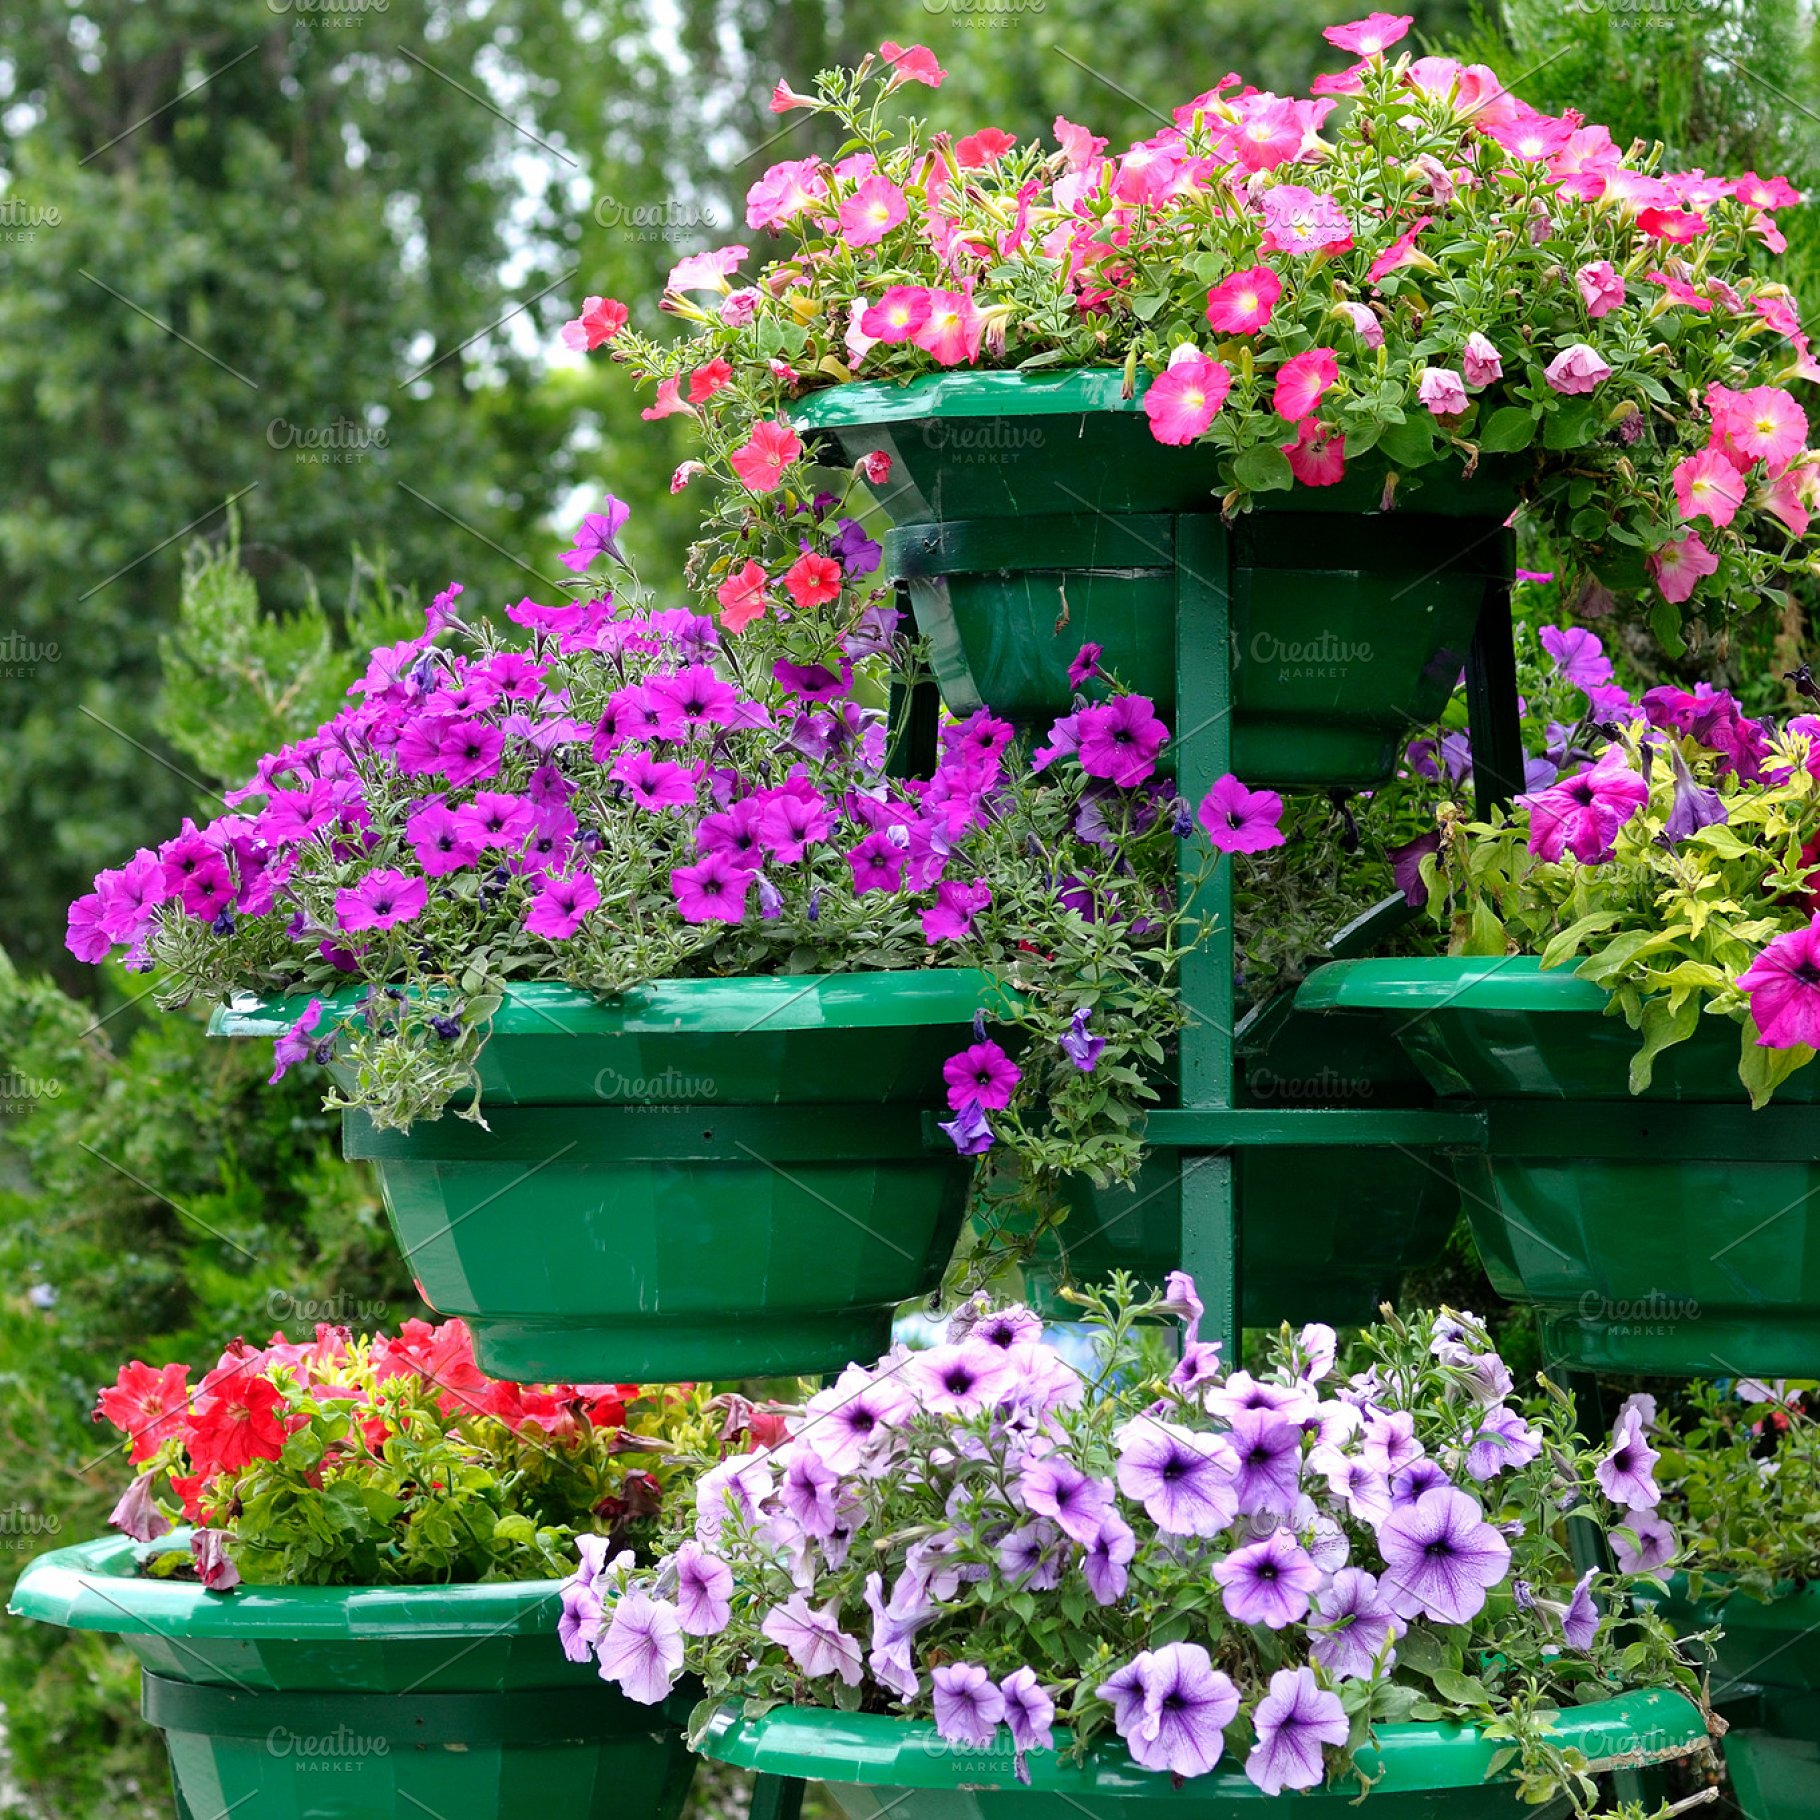 Petunia Flowers In Pots High Quality Nature Stock Photos